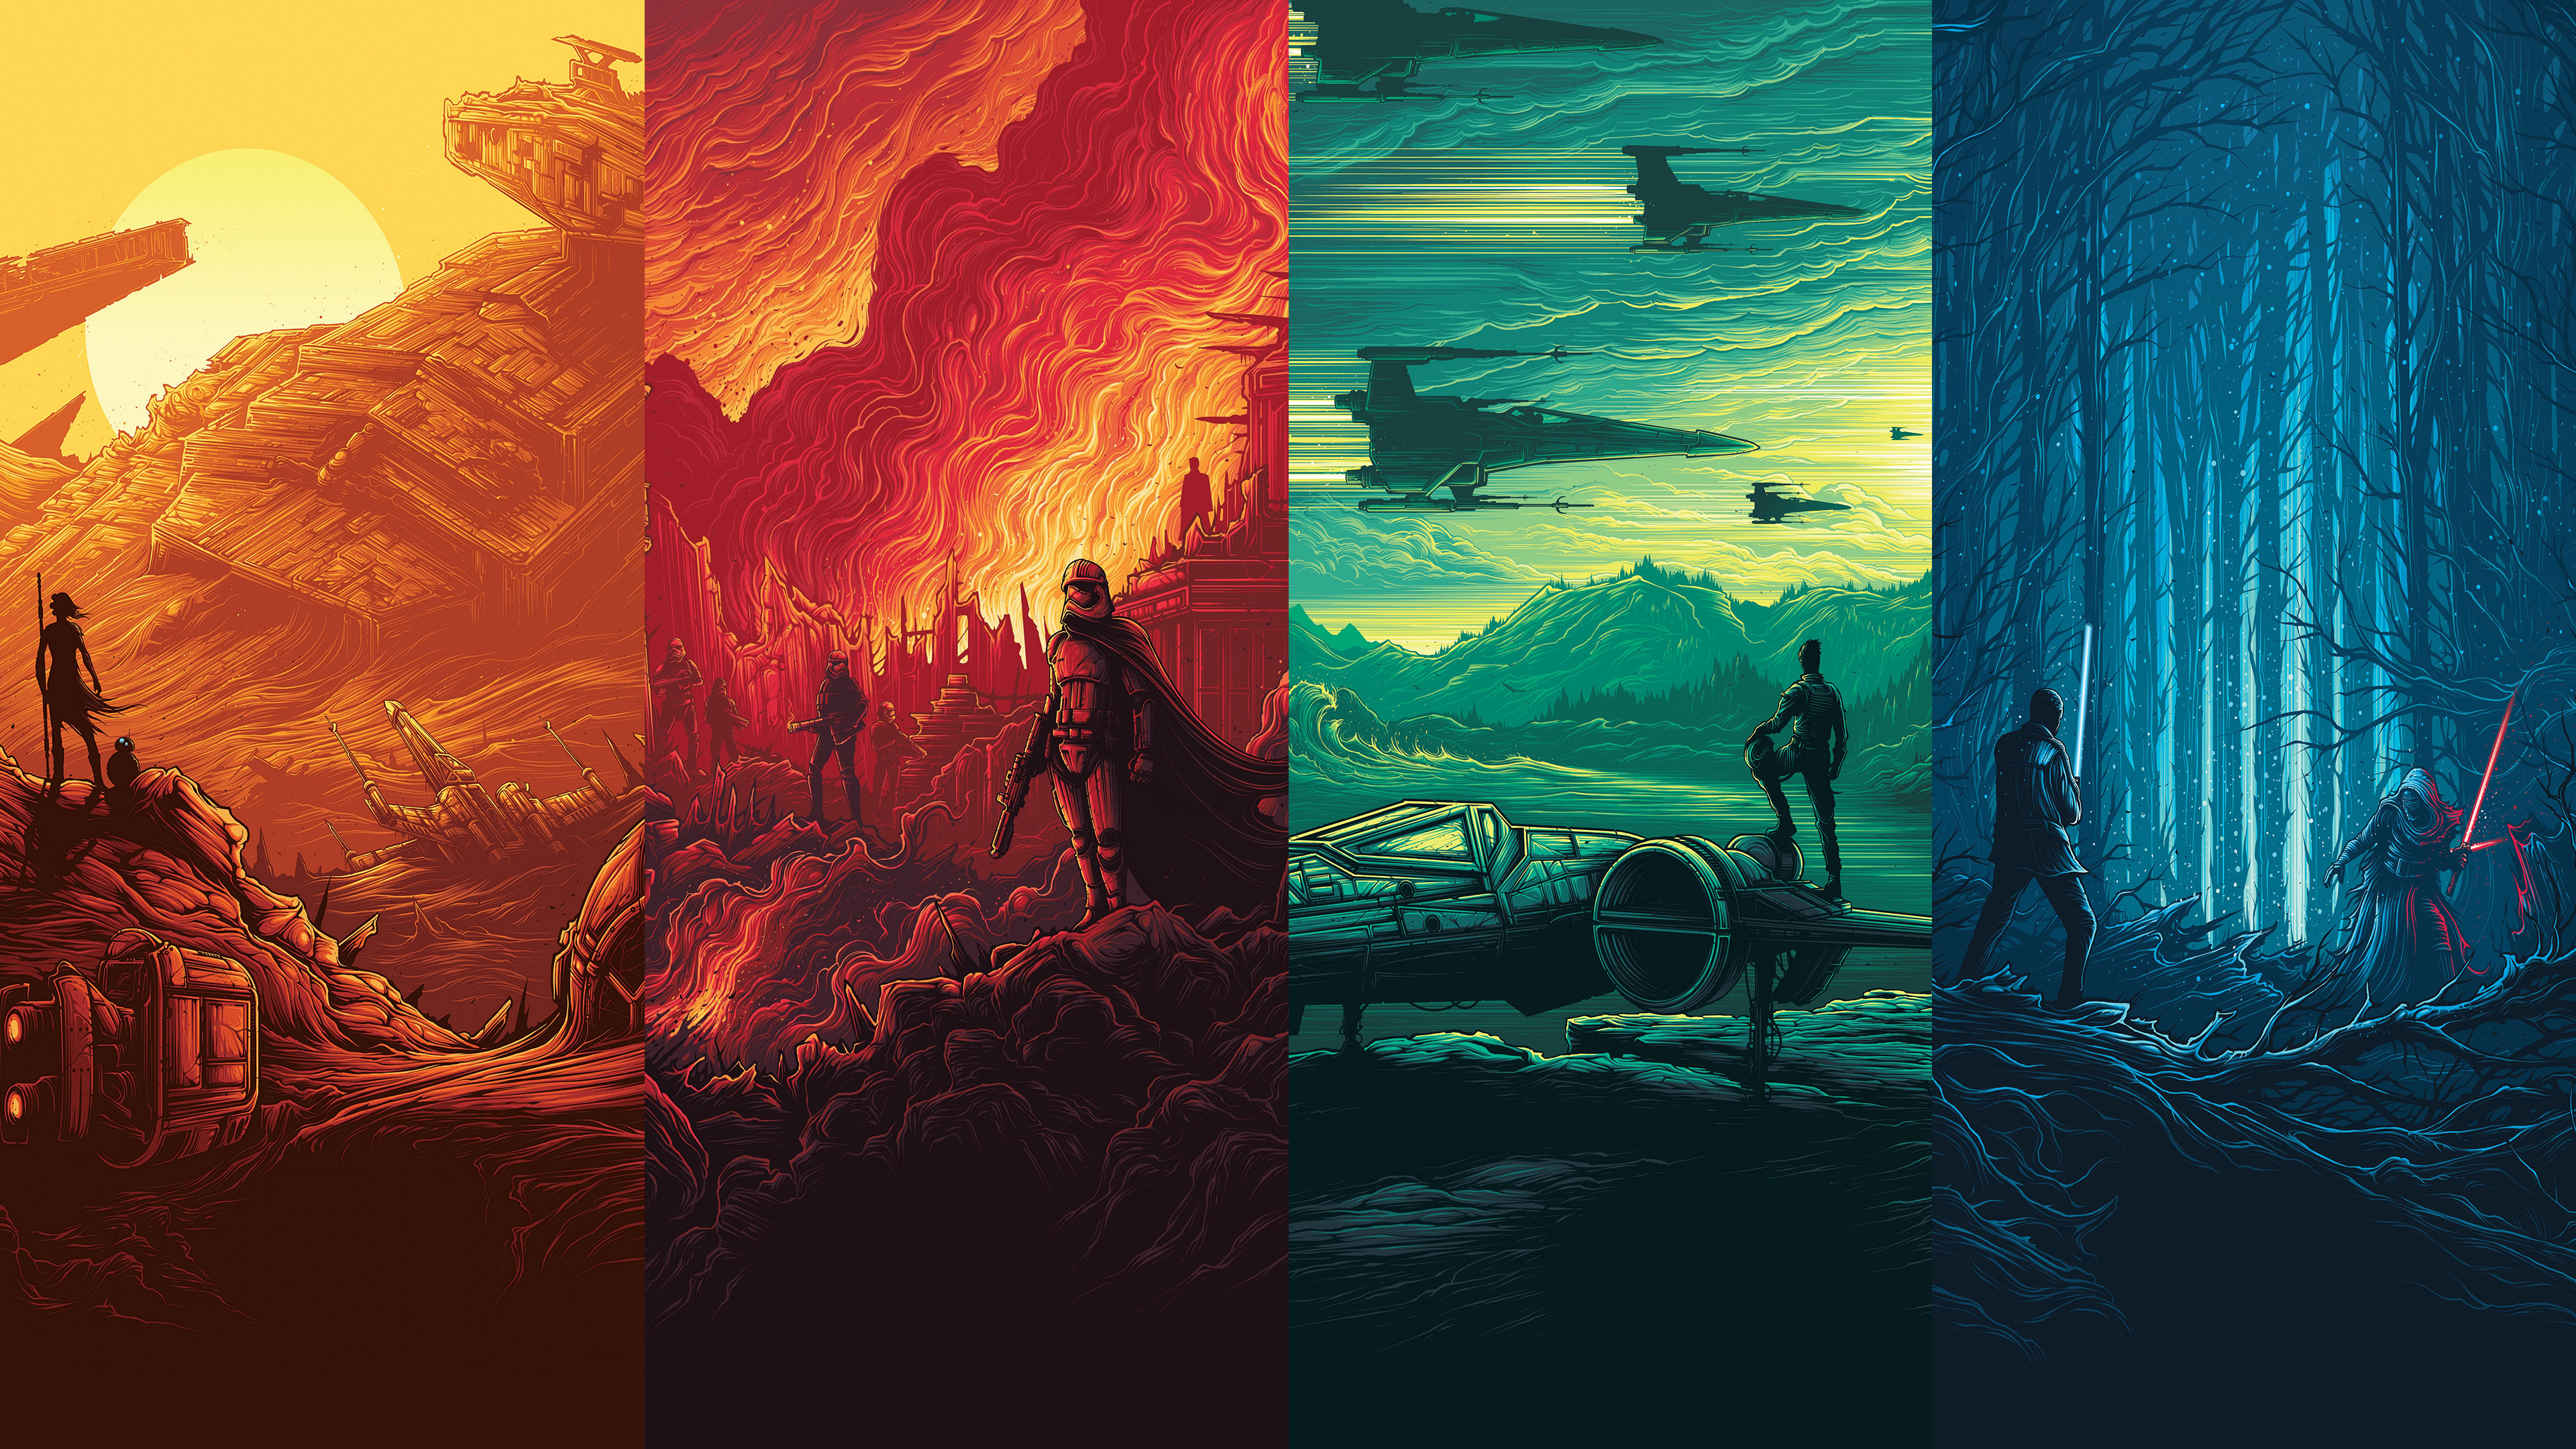 Epic Star Wars Wallpapers HD 3840x2160